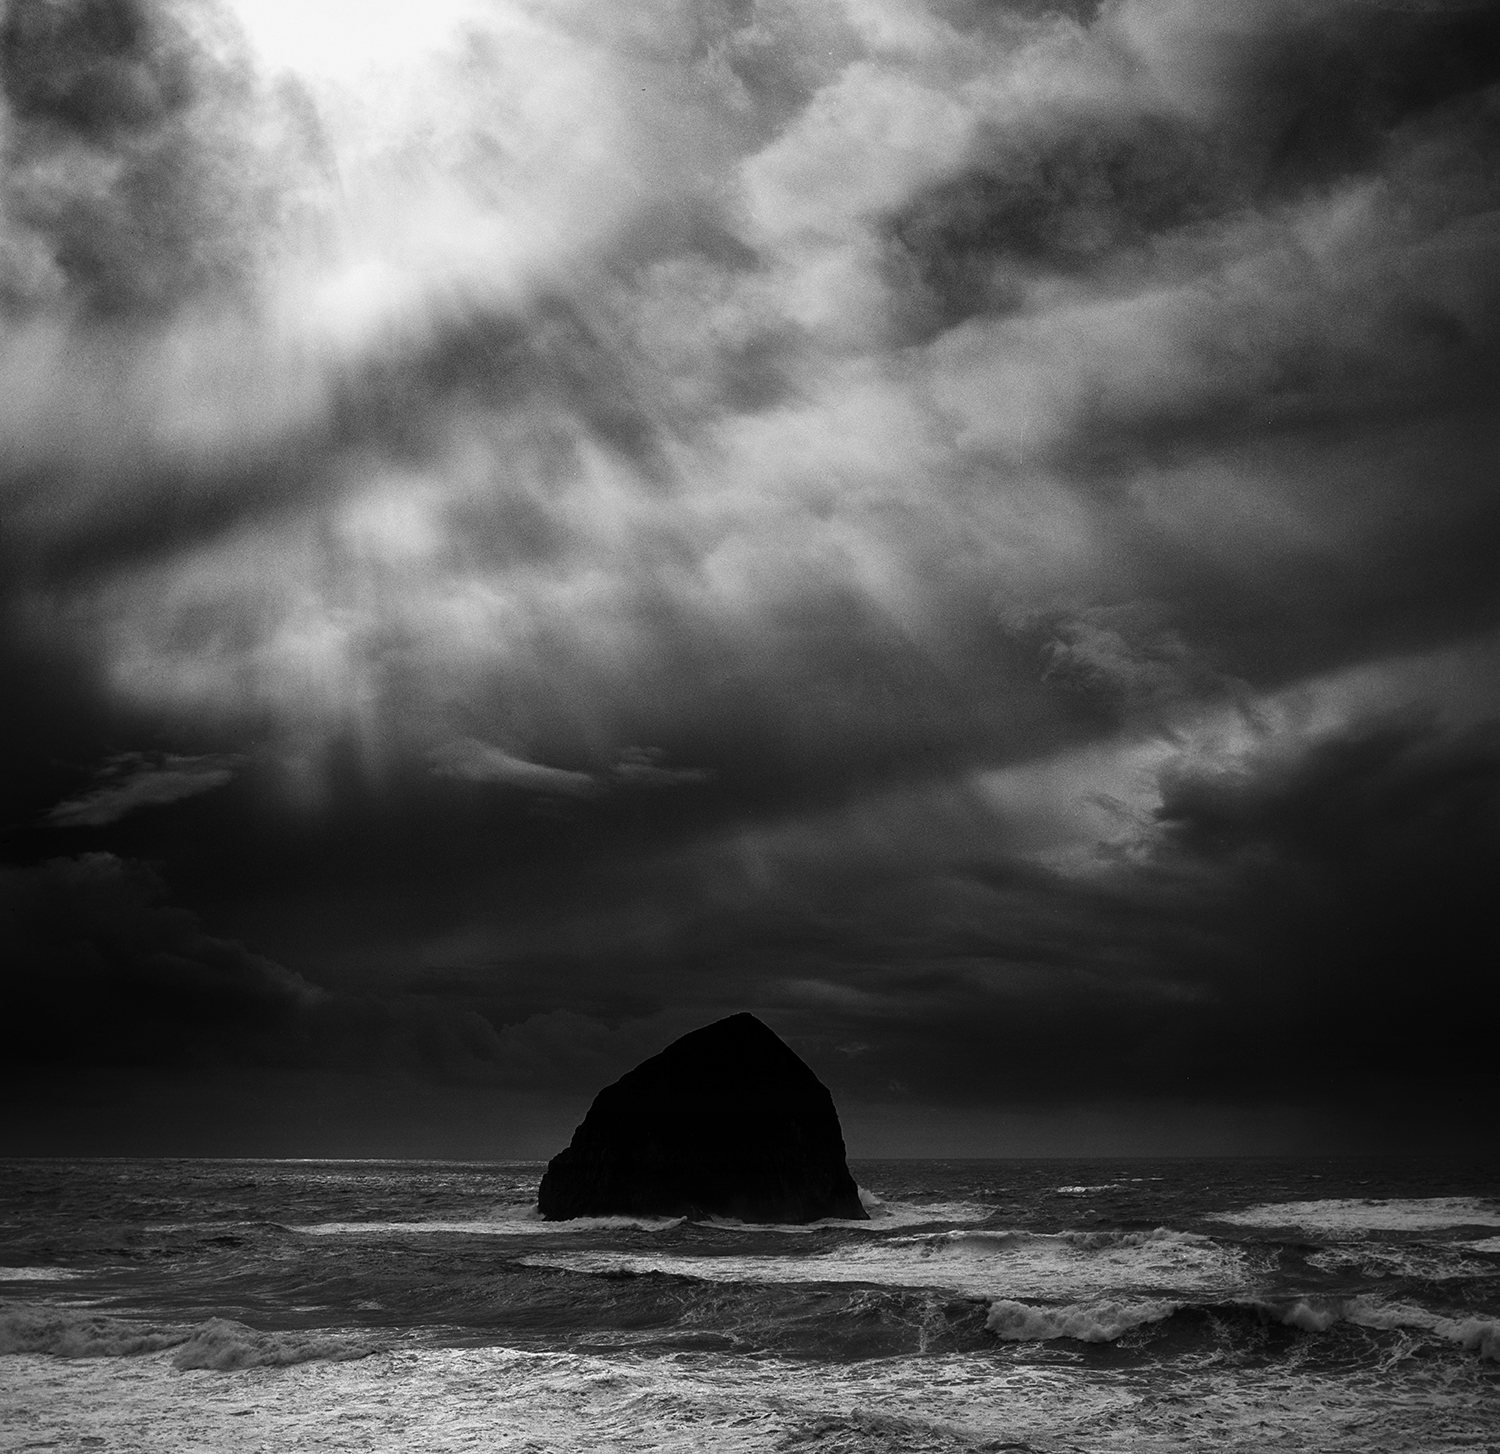 cape kiwanda stormy day hblad 6.jpg